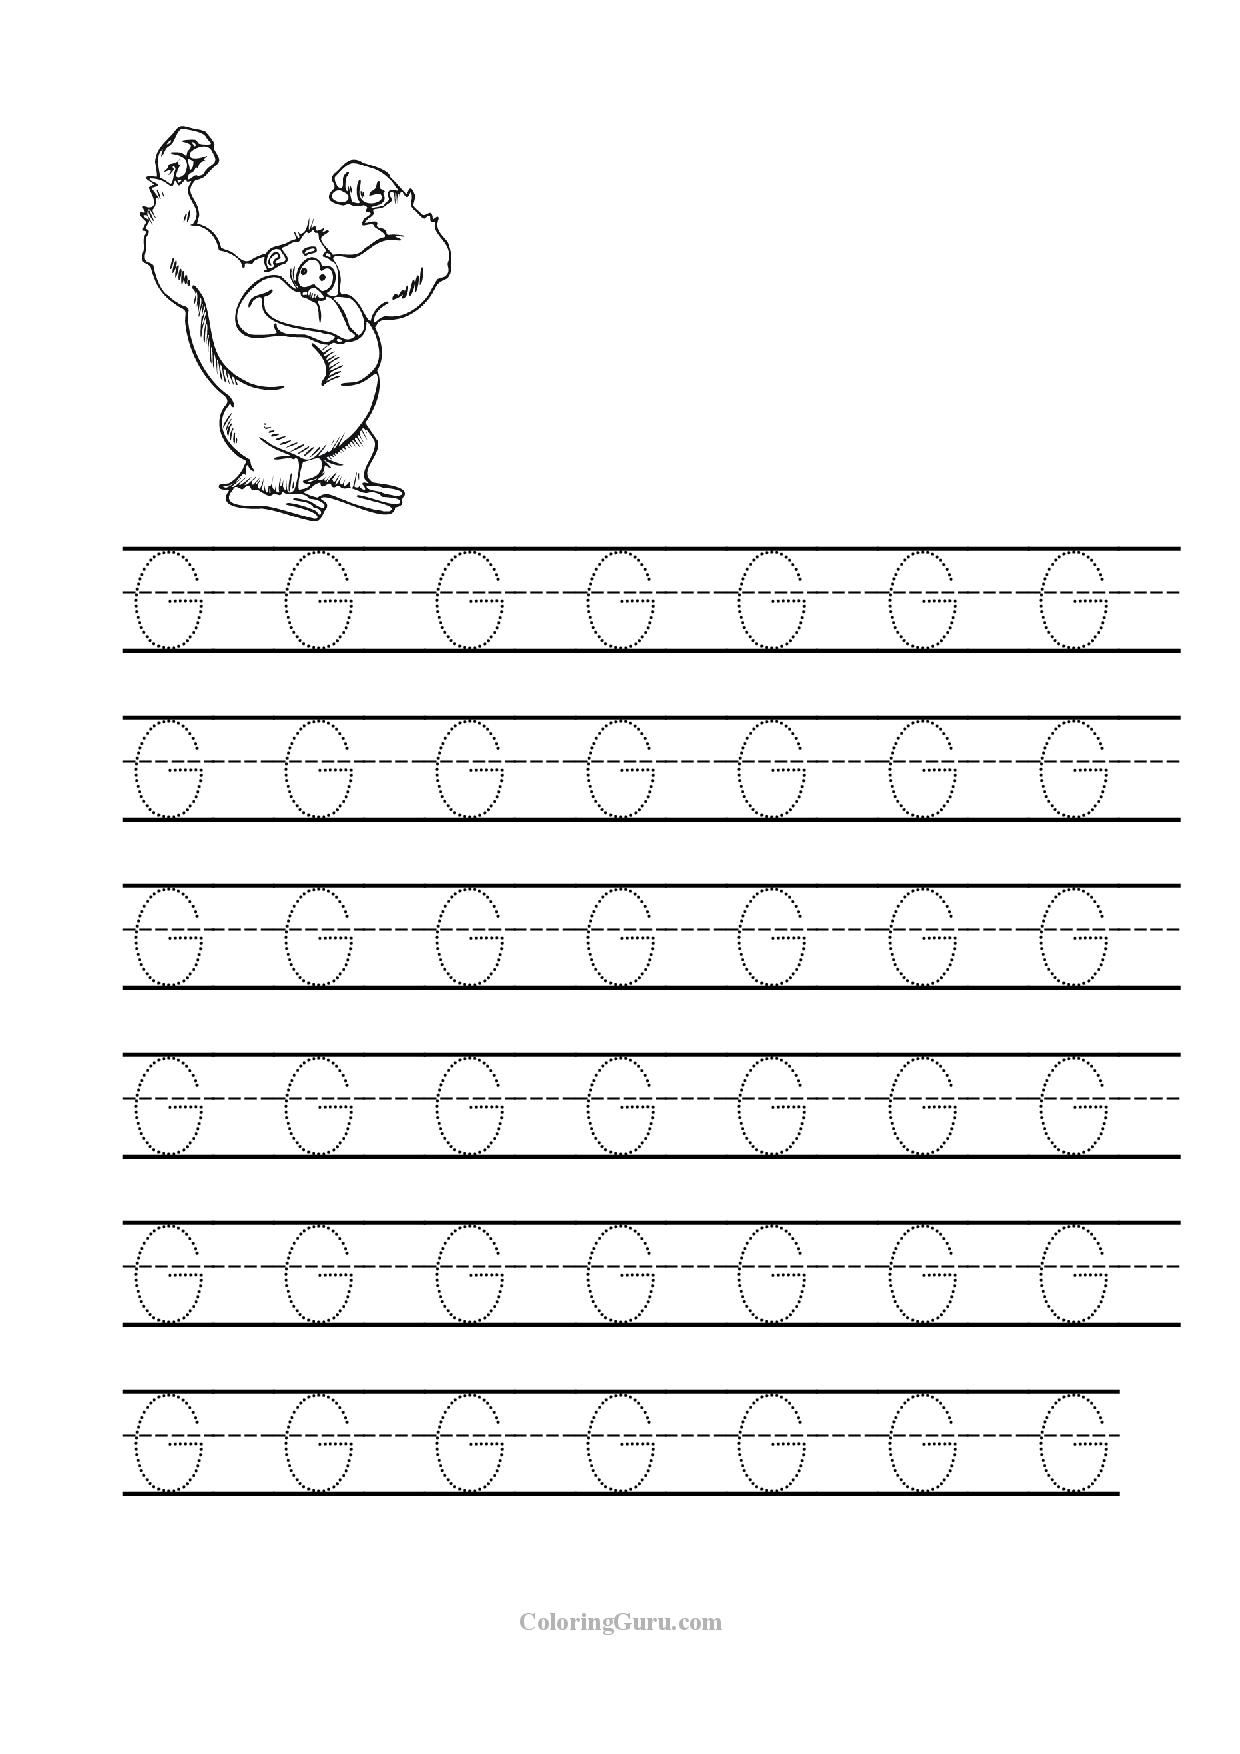 Free Printable Tracing Letter G Worksheets For Preschool pertaining to Letter G Tracing Sheet